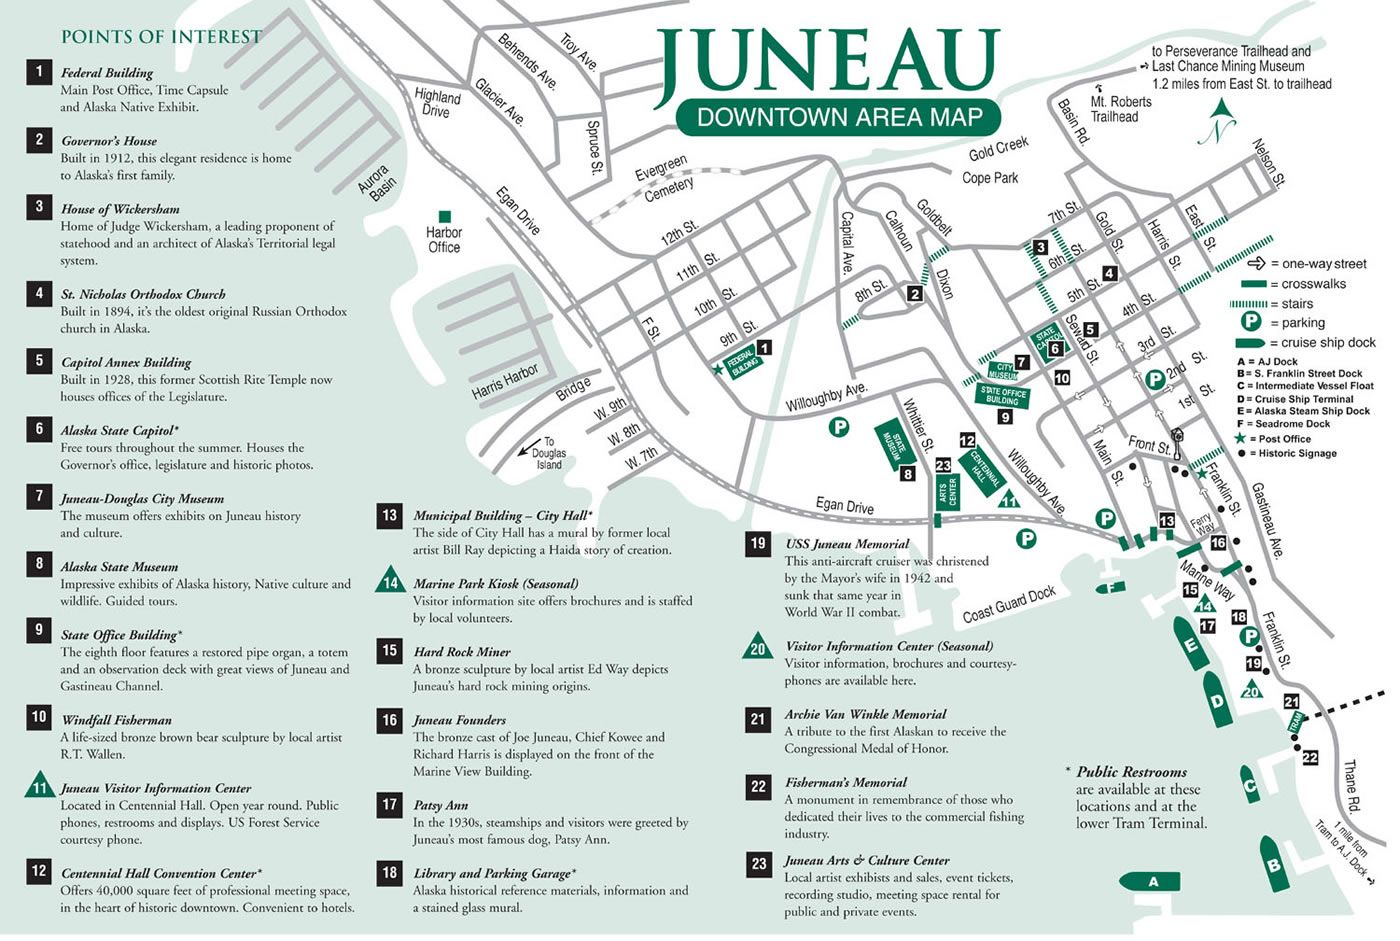 Juneau Downtown Area Map Cruise in 2019